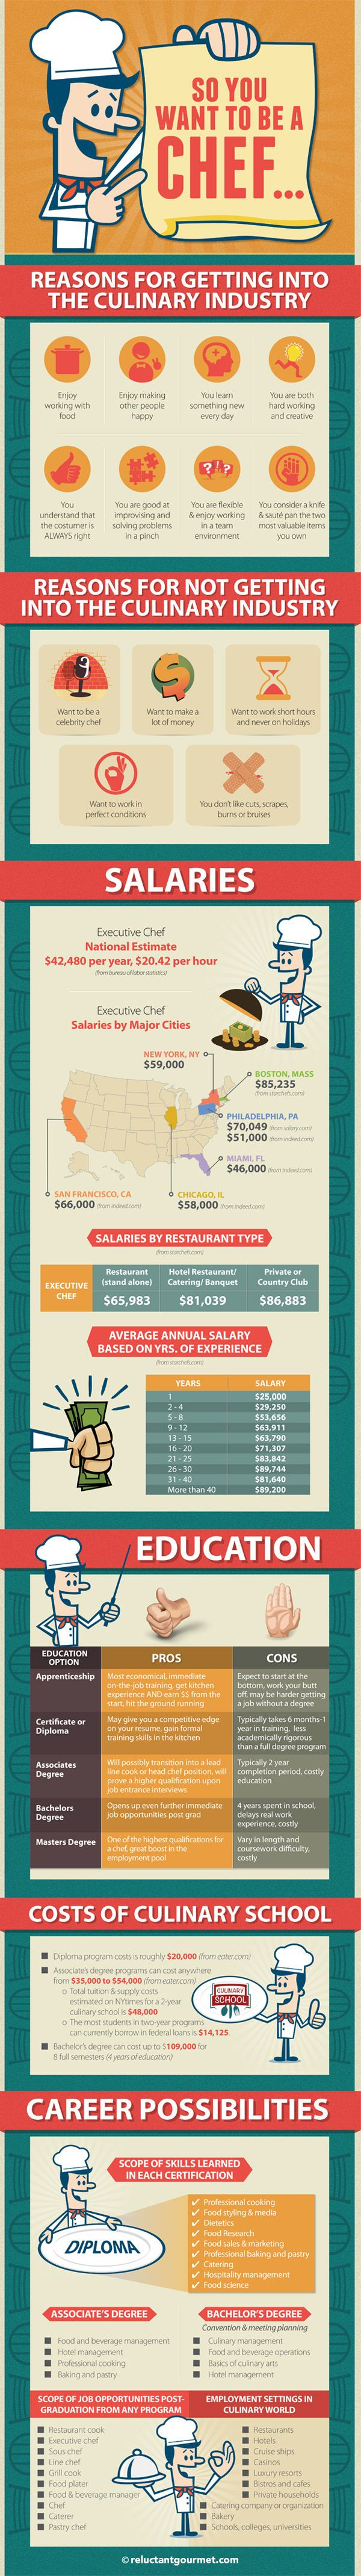 becoming a chef info graphic